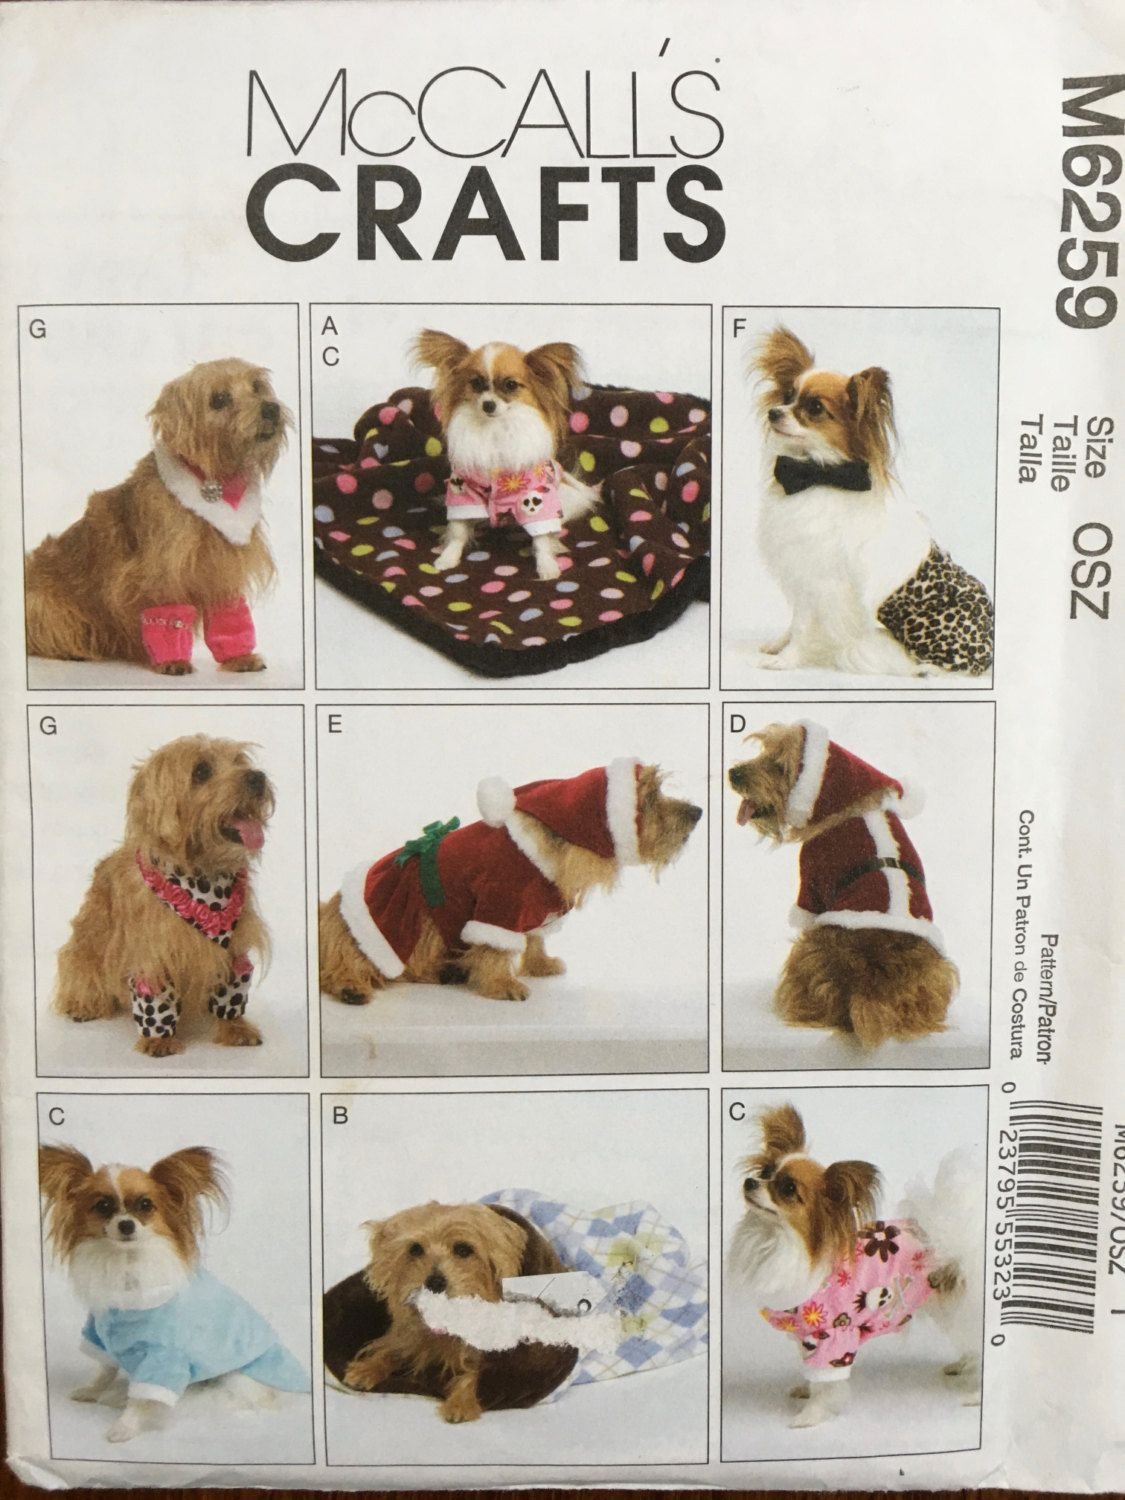 Mccallsm6259 great dog costume pattern pet clothes christmas mccall sewing pattern 6259 use to make dog clothes blanket sleeping bag length sizes 6 inches to 16 inches jeuxipadfo Image collections